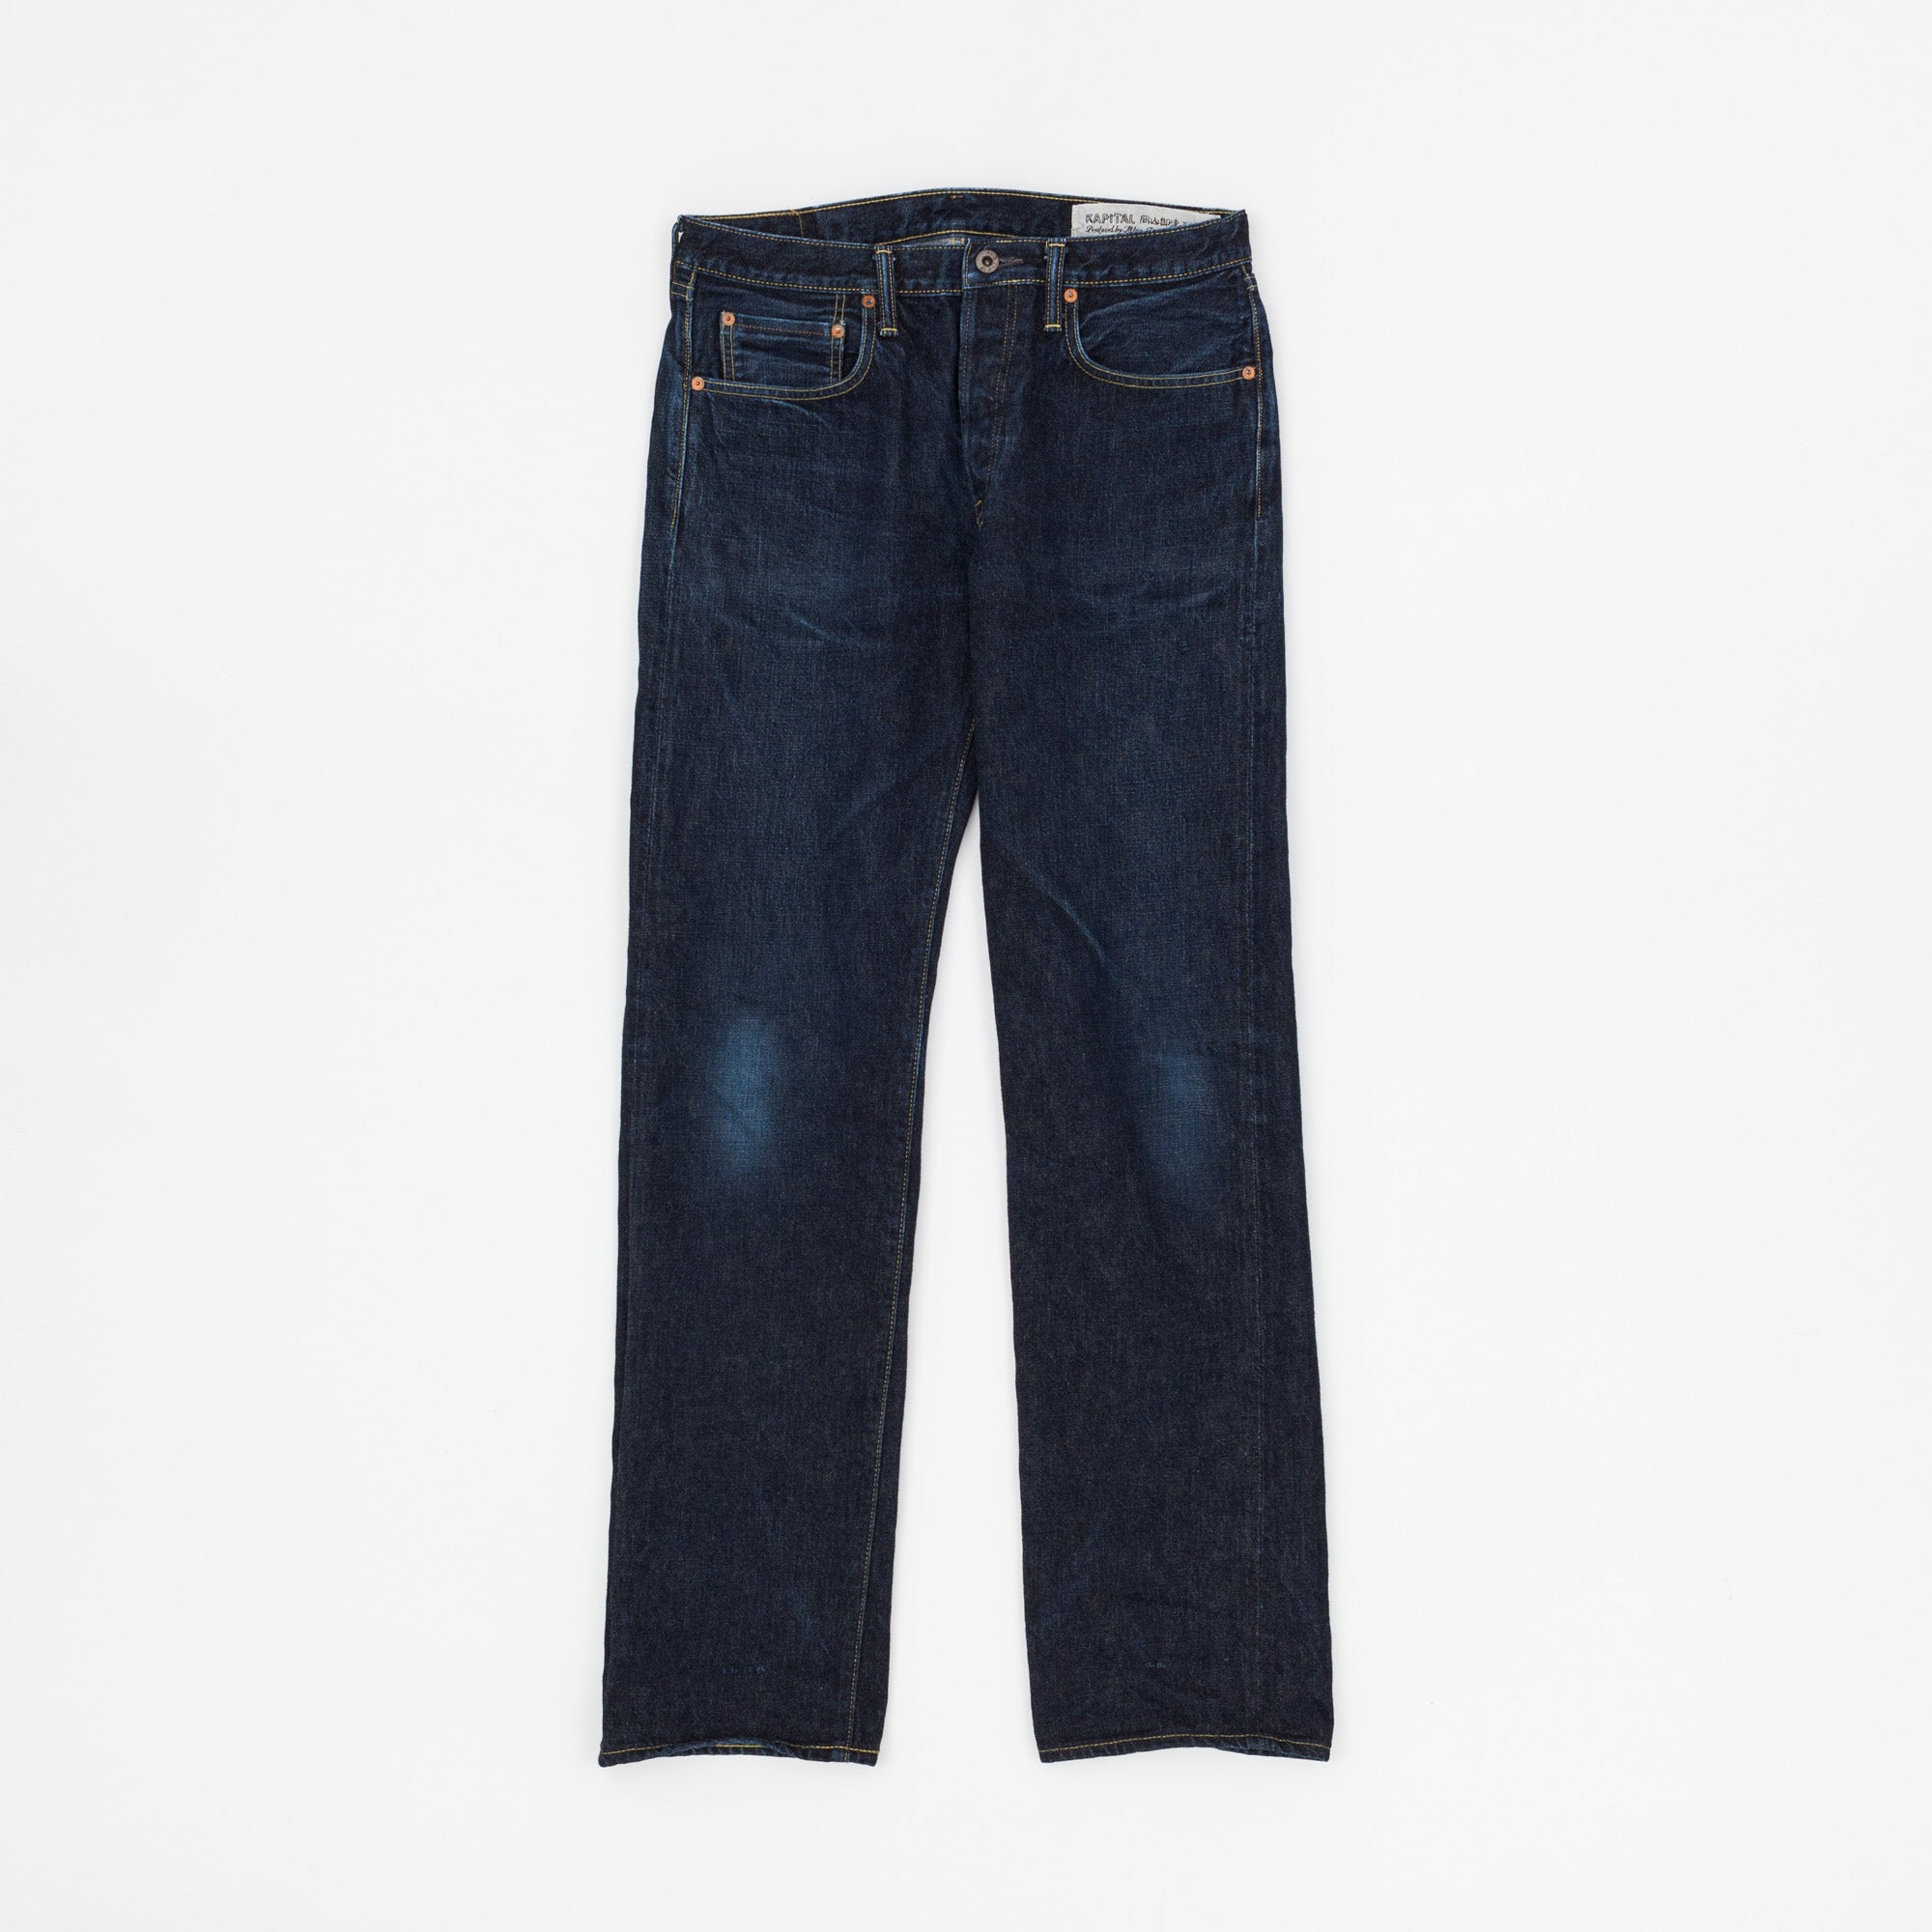 KAPITAL Red Selvedge Denim Jeans